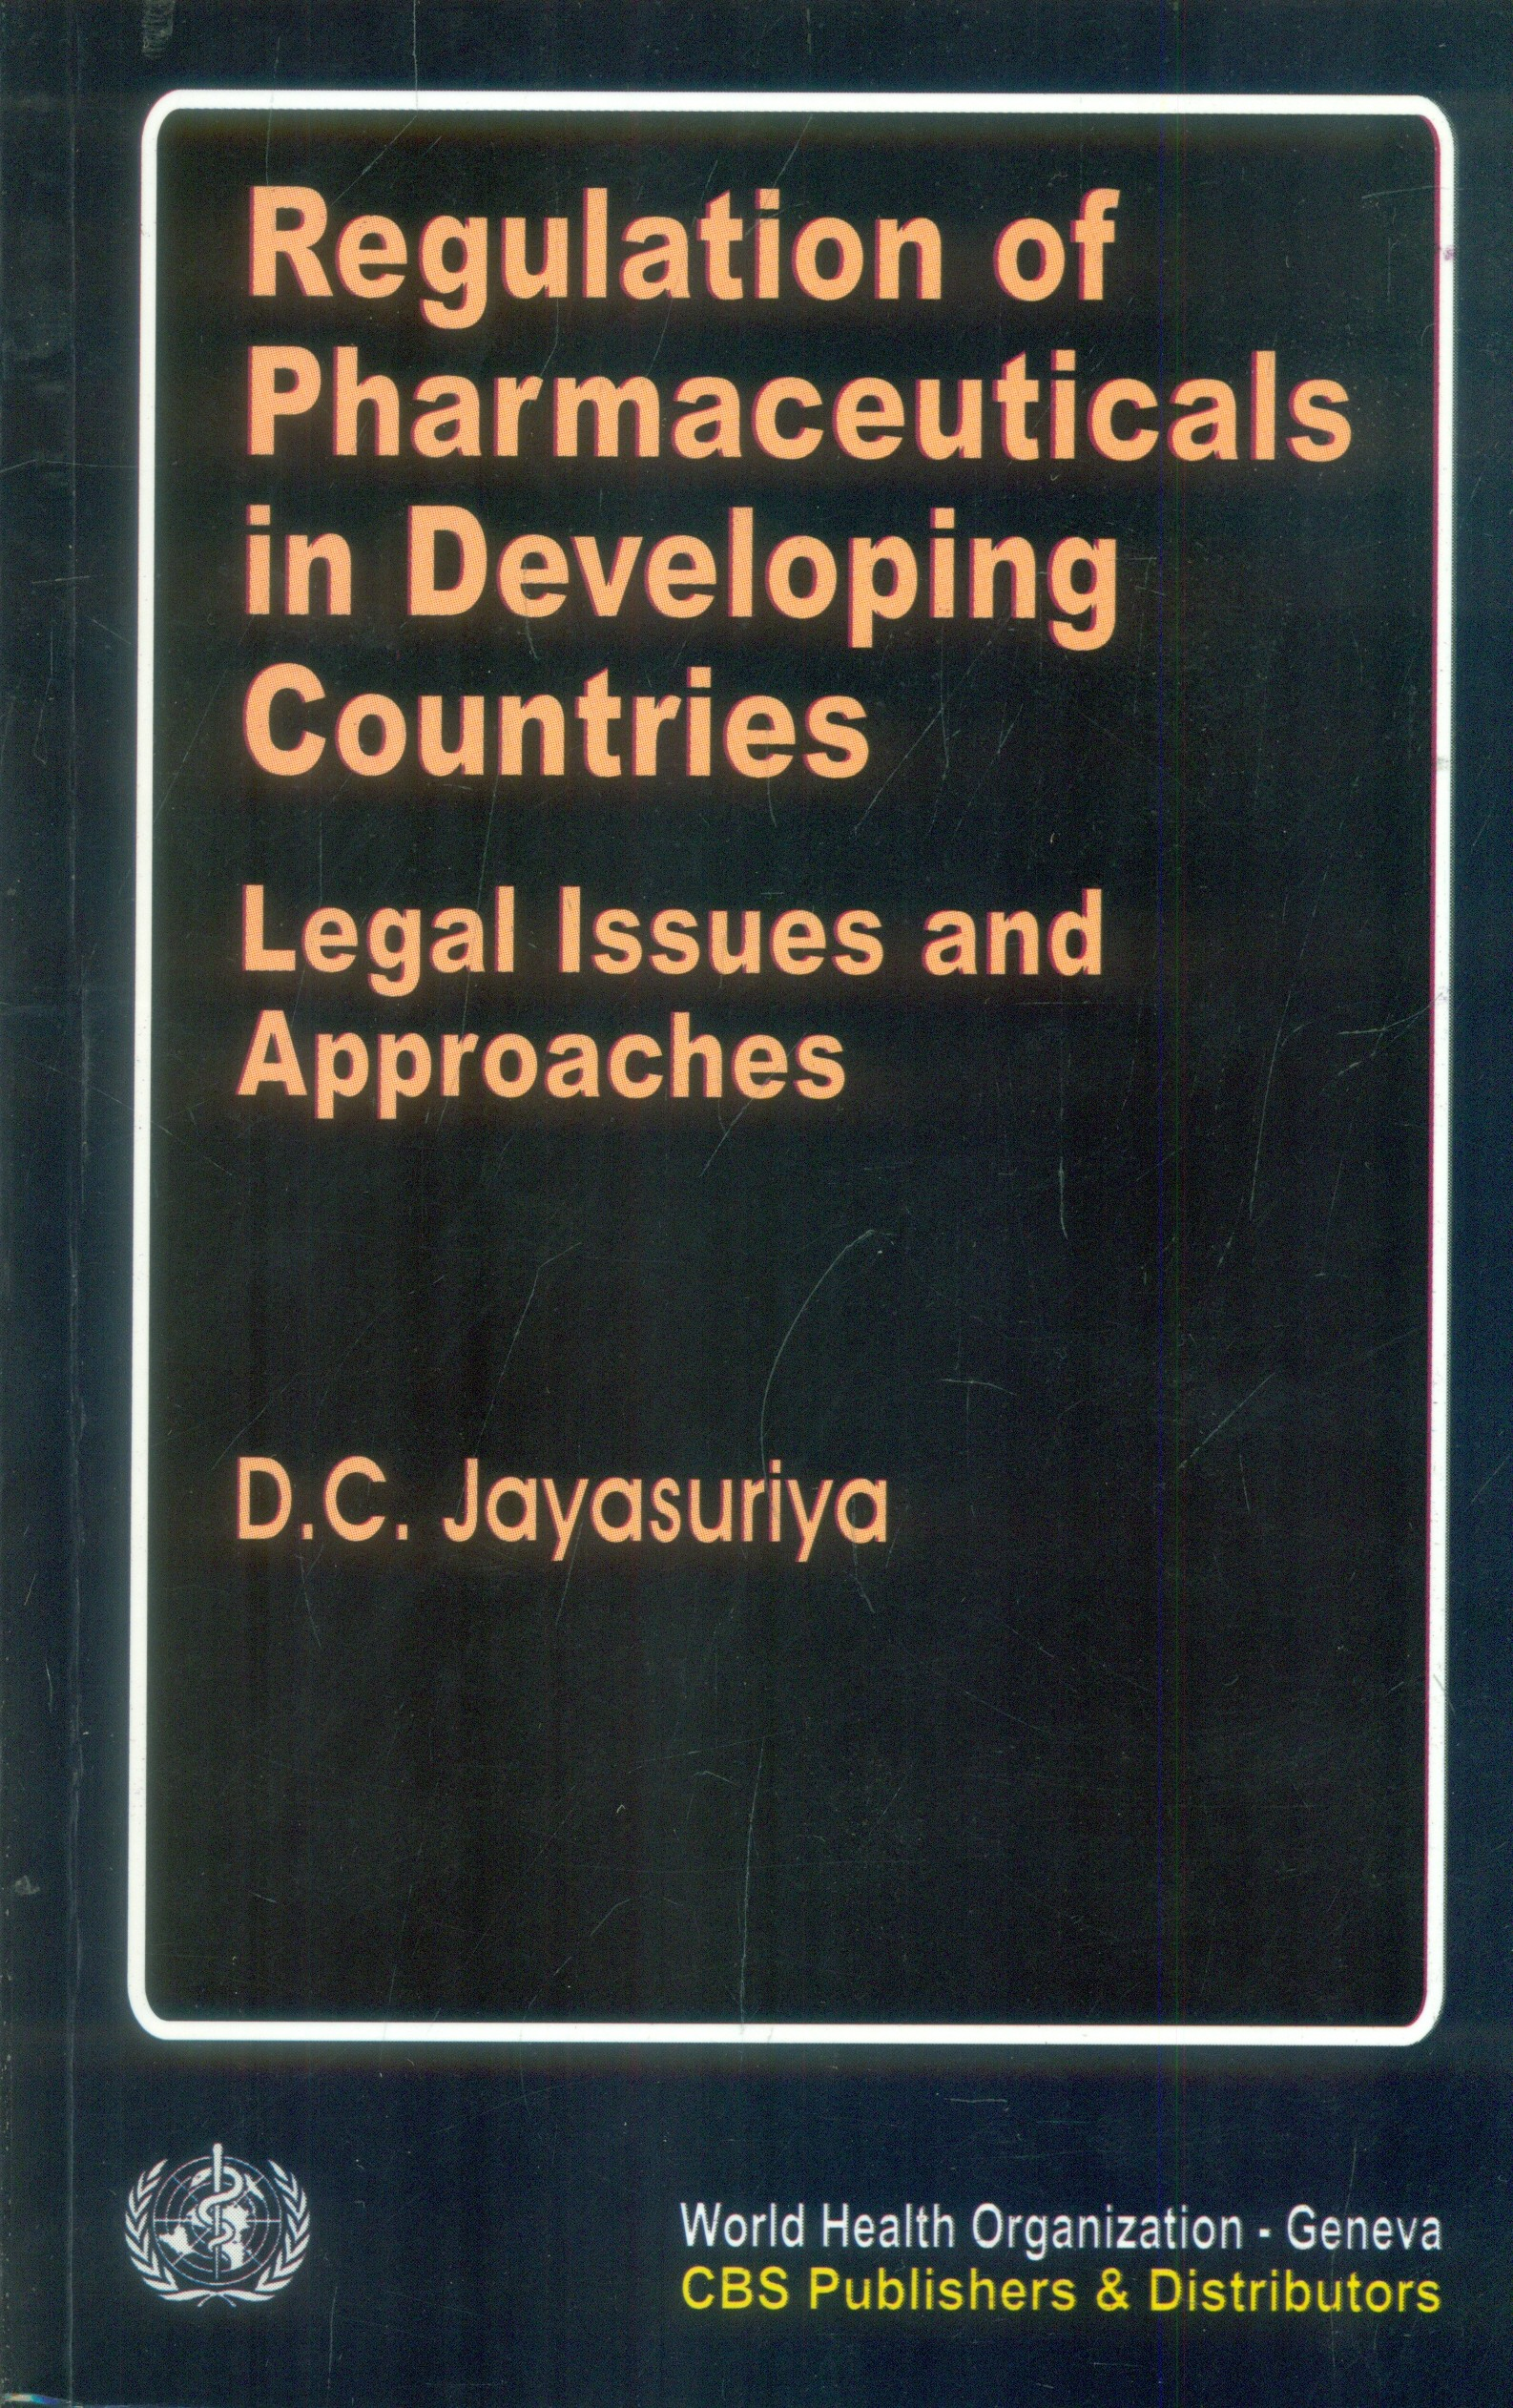 REGULATION OF PHARMACEUTICALS IN DEVELOPING COUNTRIES LEGAL ISSUES AND APPROACHES (PB 1991)